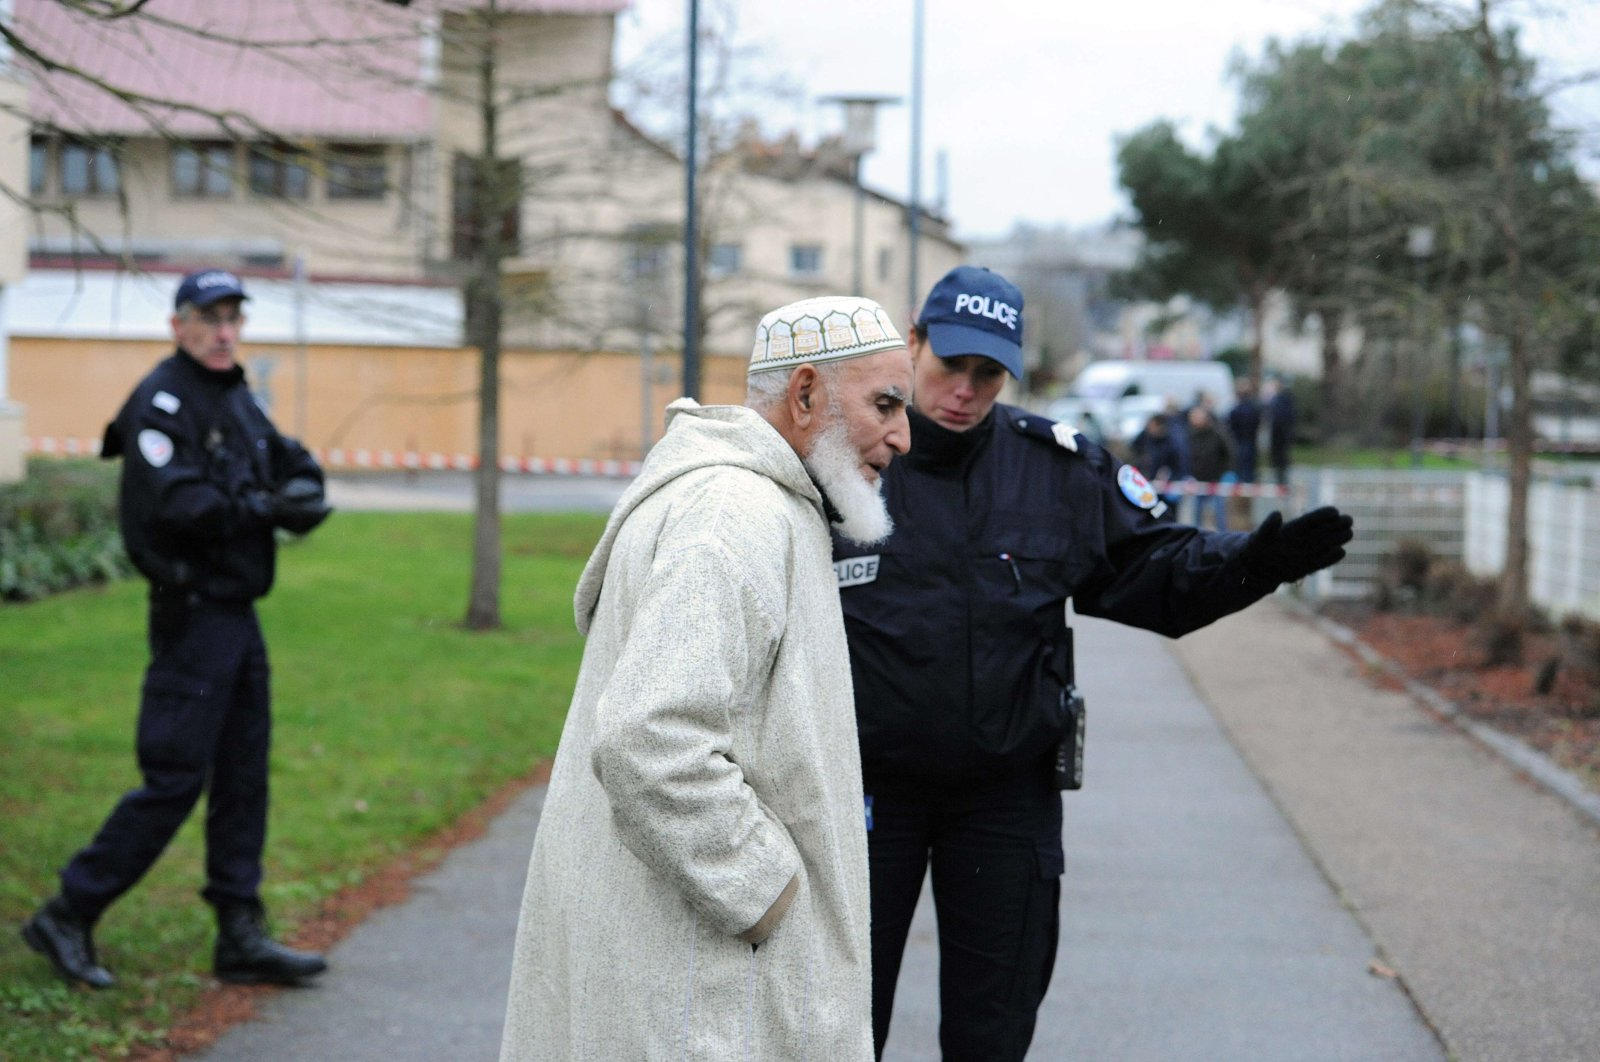 A police officer directs a man away as members of the French technical and scientific police work at the site near a mosque in the Sablons neighborhood of Le Mans, western France, on January 8, 2015. (AFP Photo)